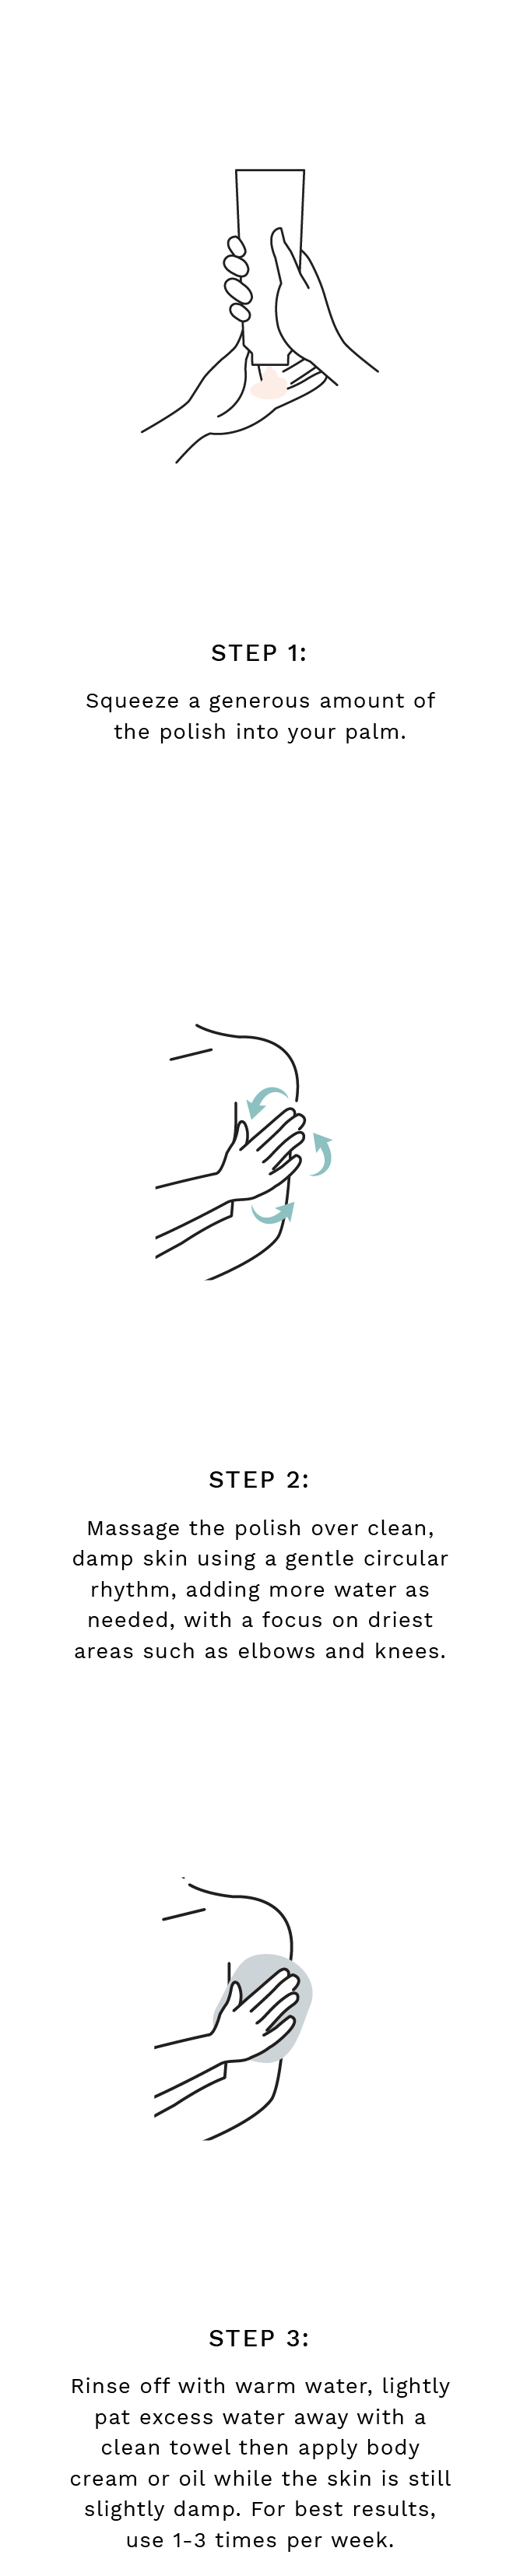 Step 1: Squeeze a generous amount of the polish into your palm. Step 2: Massage the polish over clean, damp skin using a gentle circular rhythm, adding more water as needed, with a focus on driest areas such as elbows and knees. Step 3:Rinse off with warm water, lightly pat excess water away with a clean towel then apply body cream or oil while the skin is still slightly damp. For best results, use 1-3 times per week..